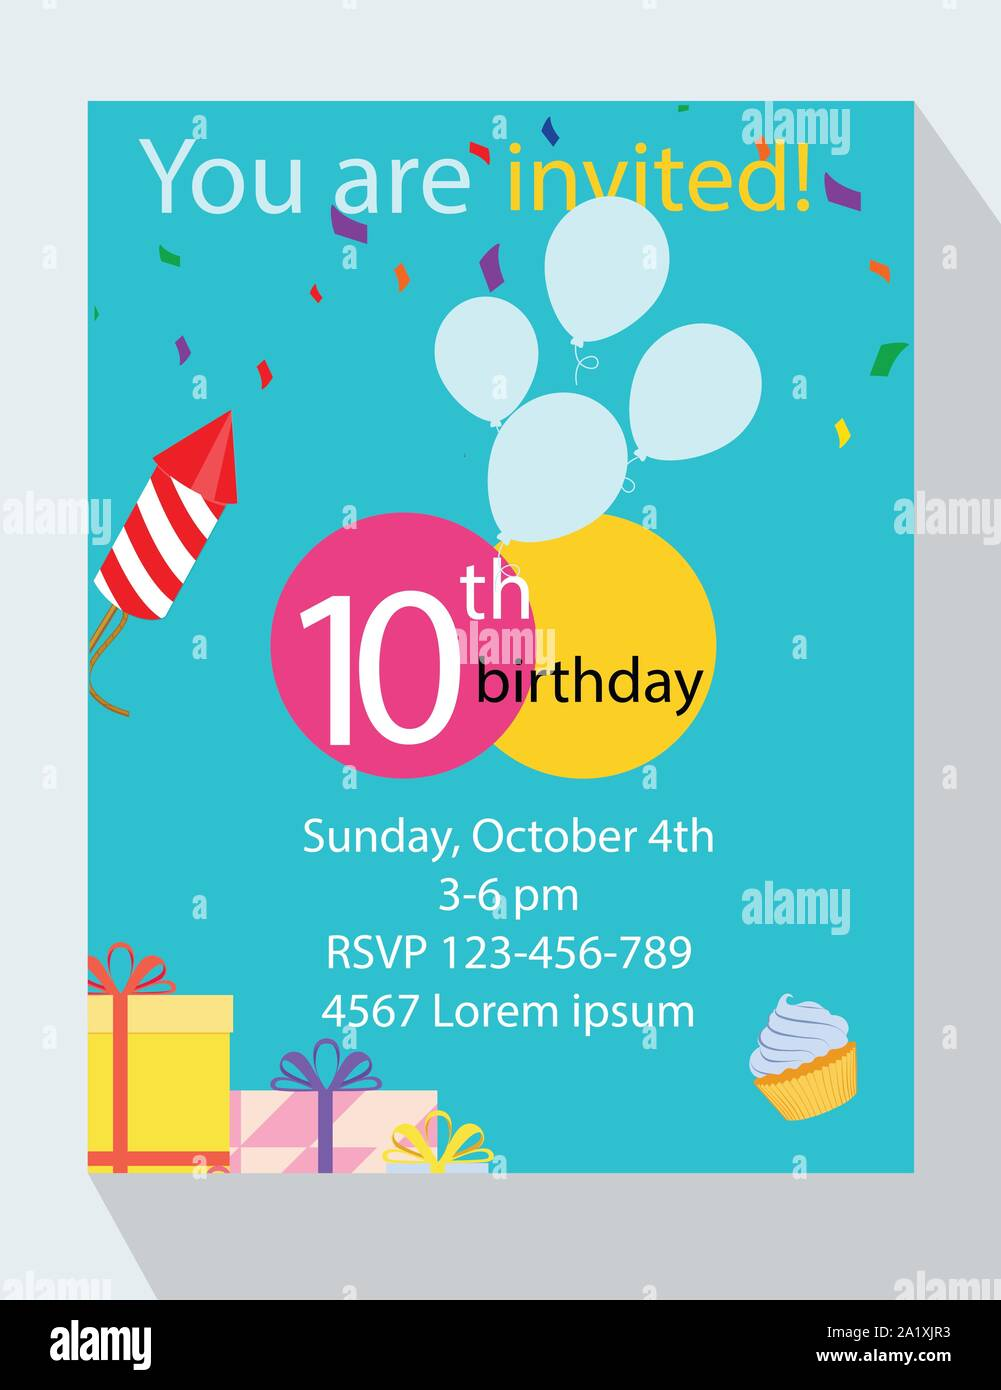 https www alamy com birthday party invitation card you are invited 10th birthday image328197159 html